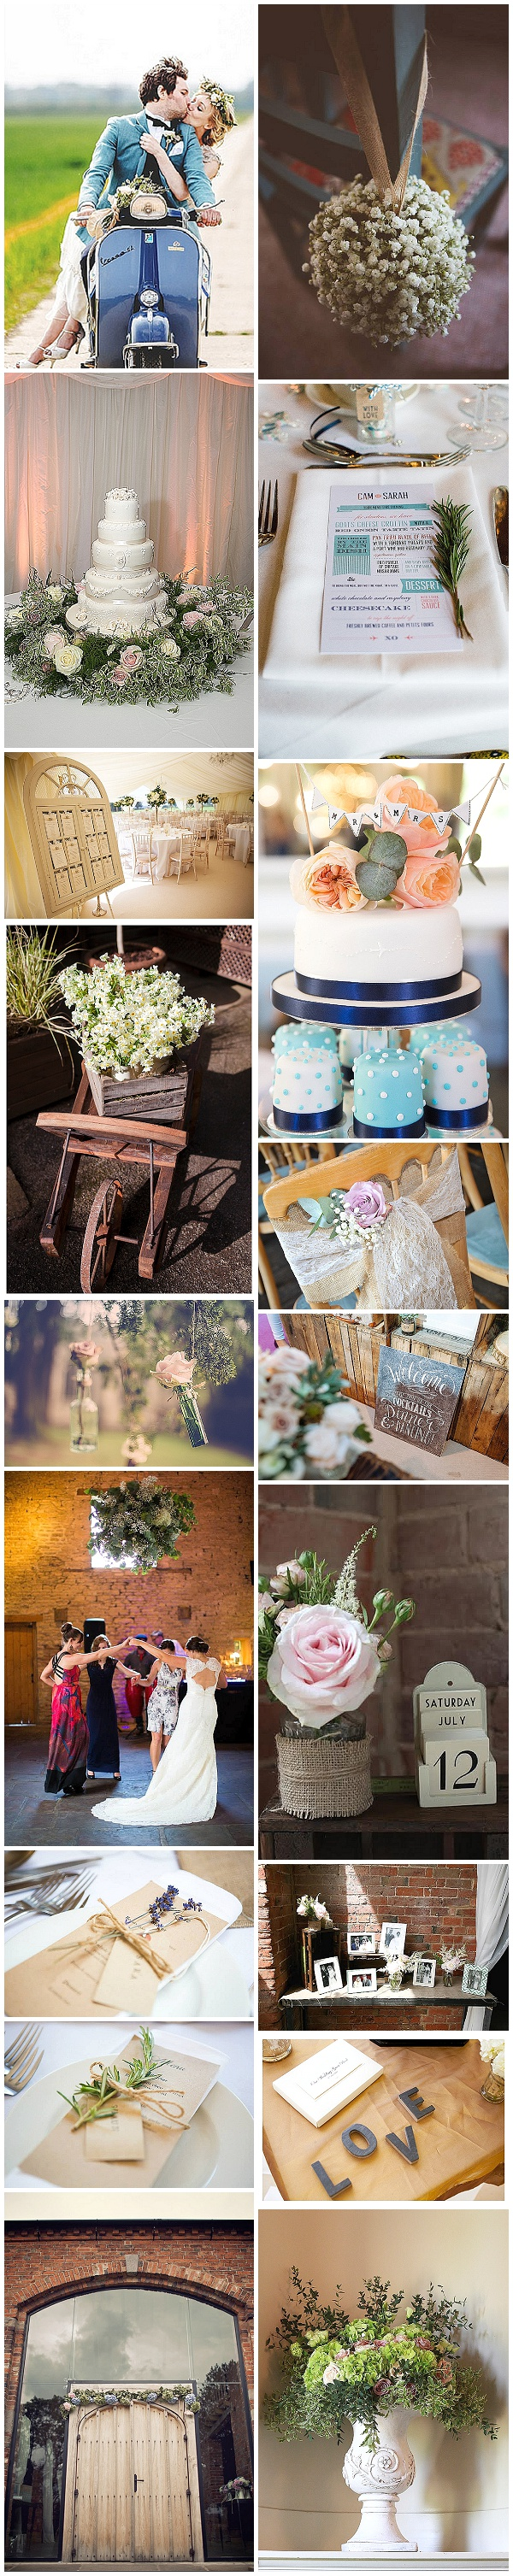 passion for flowers wedding florists wedding flowers